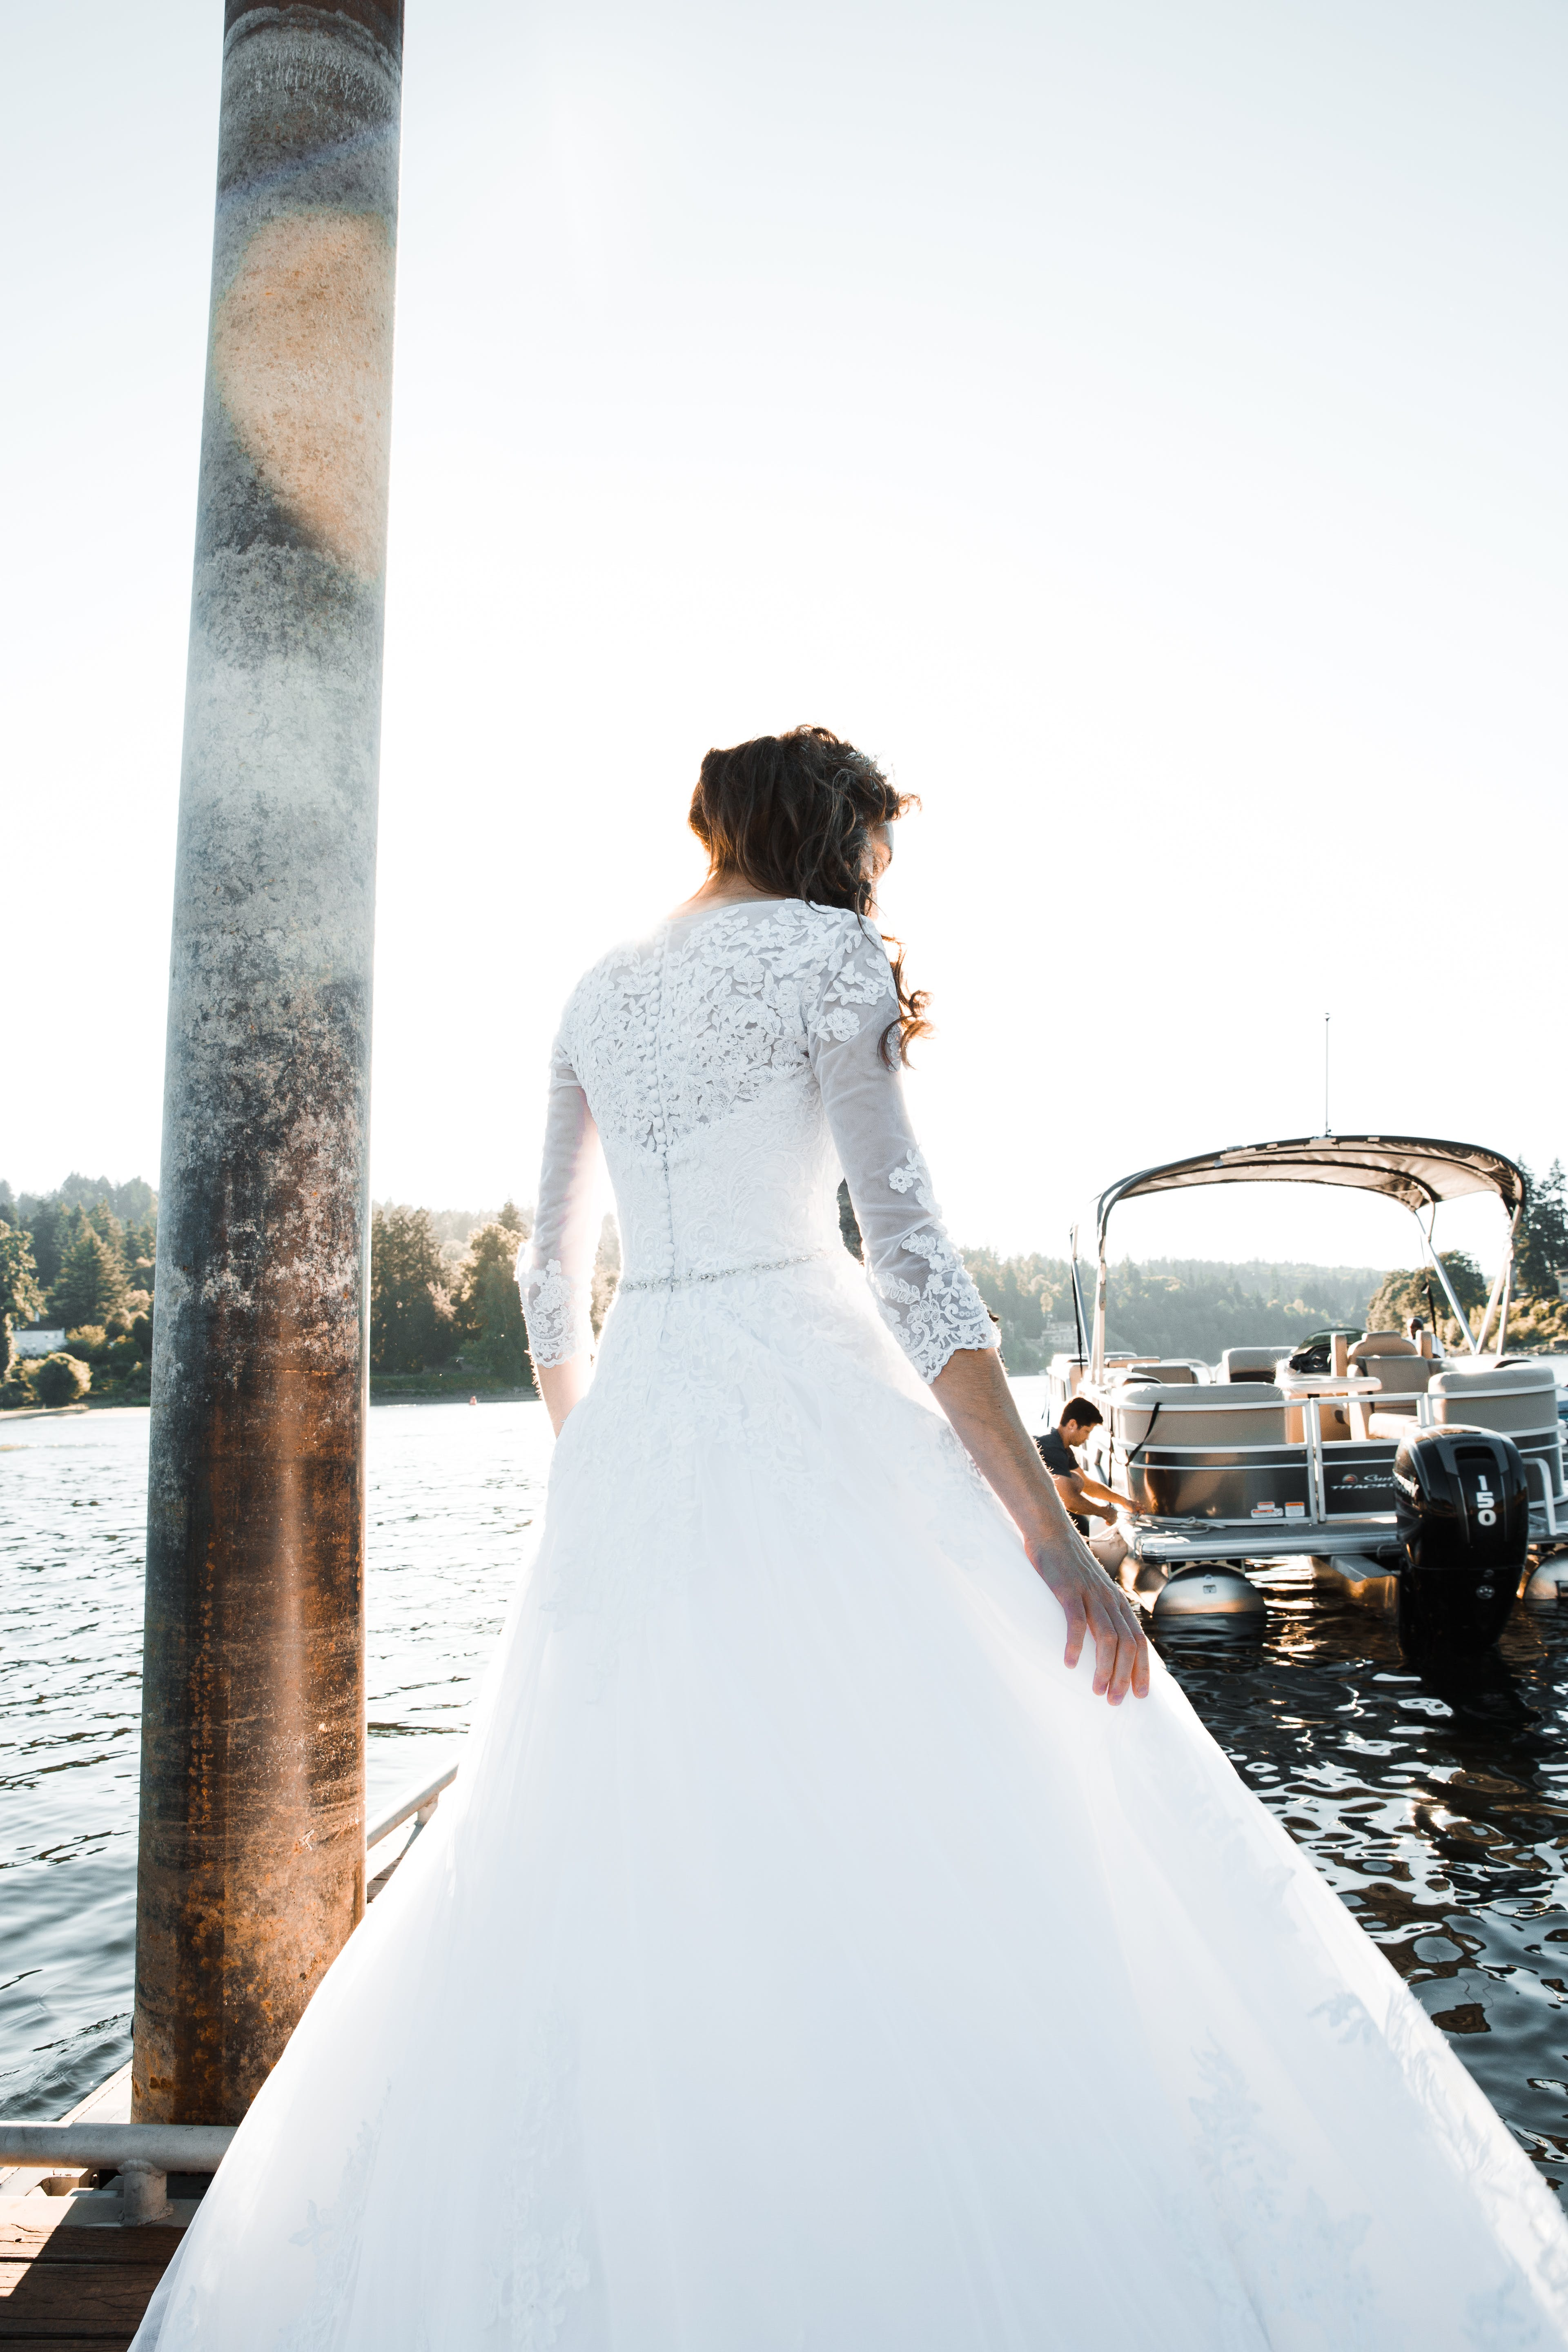 Woman in White Wedding Gown Standing Near Body of Water